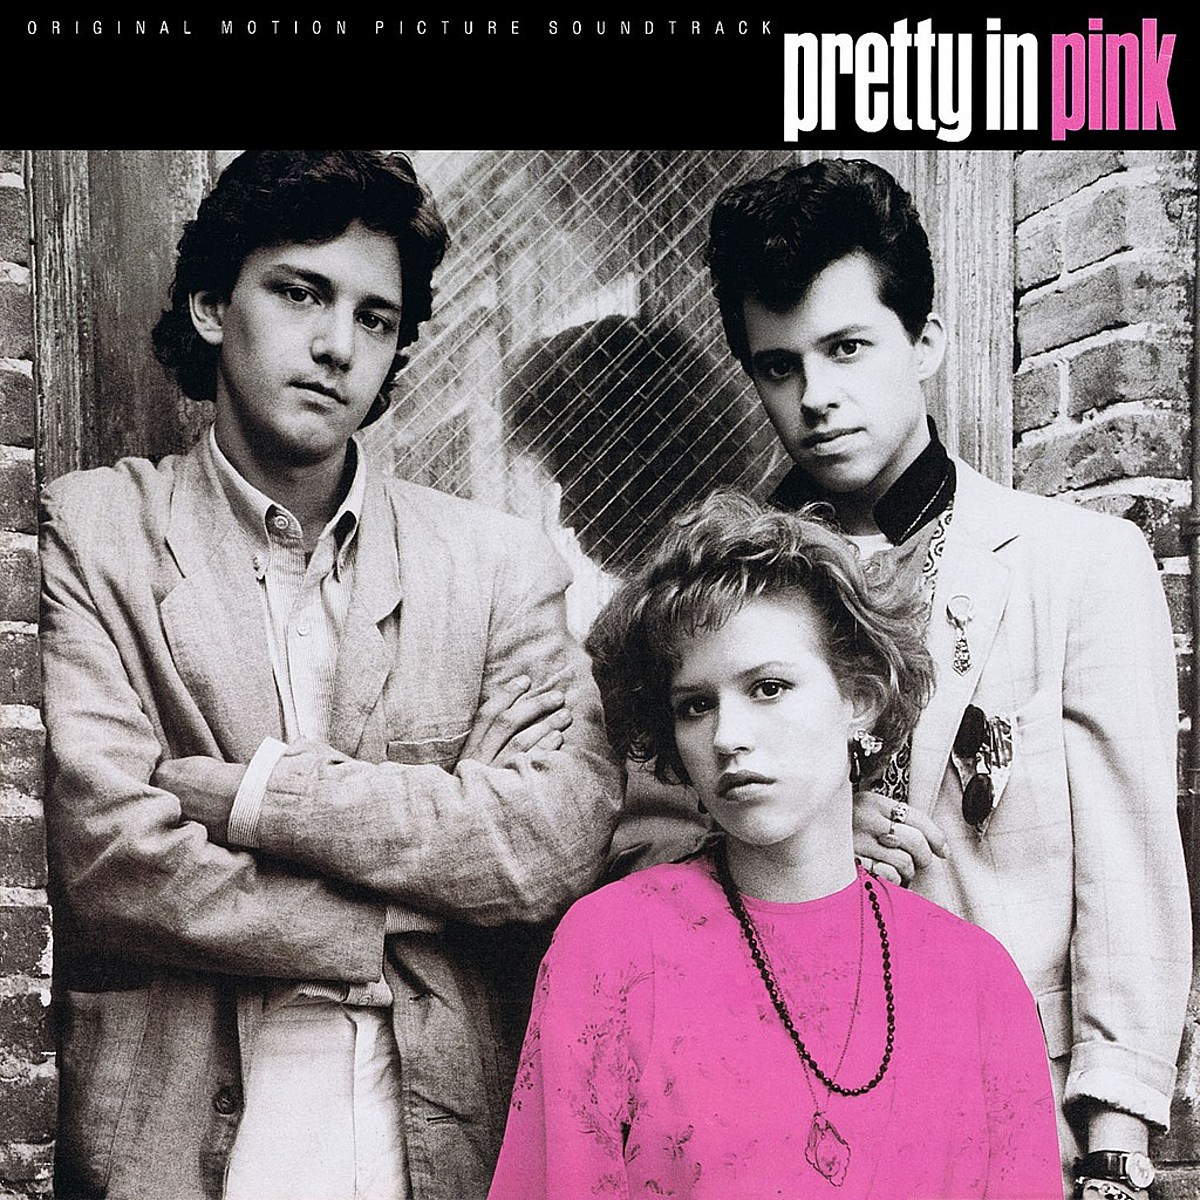 'Pretty in Pink' live: watch concert videos from Psychedelic Furs, Bunnymen, New Order, The Smiths, OMD & more